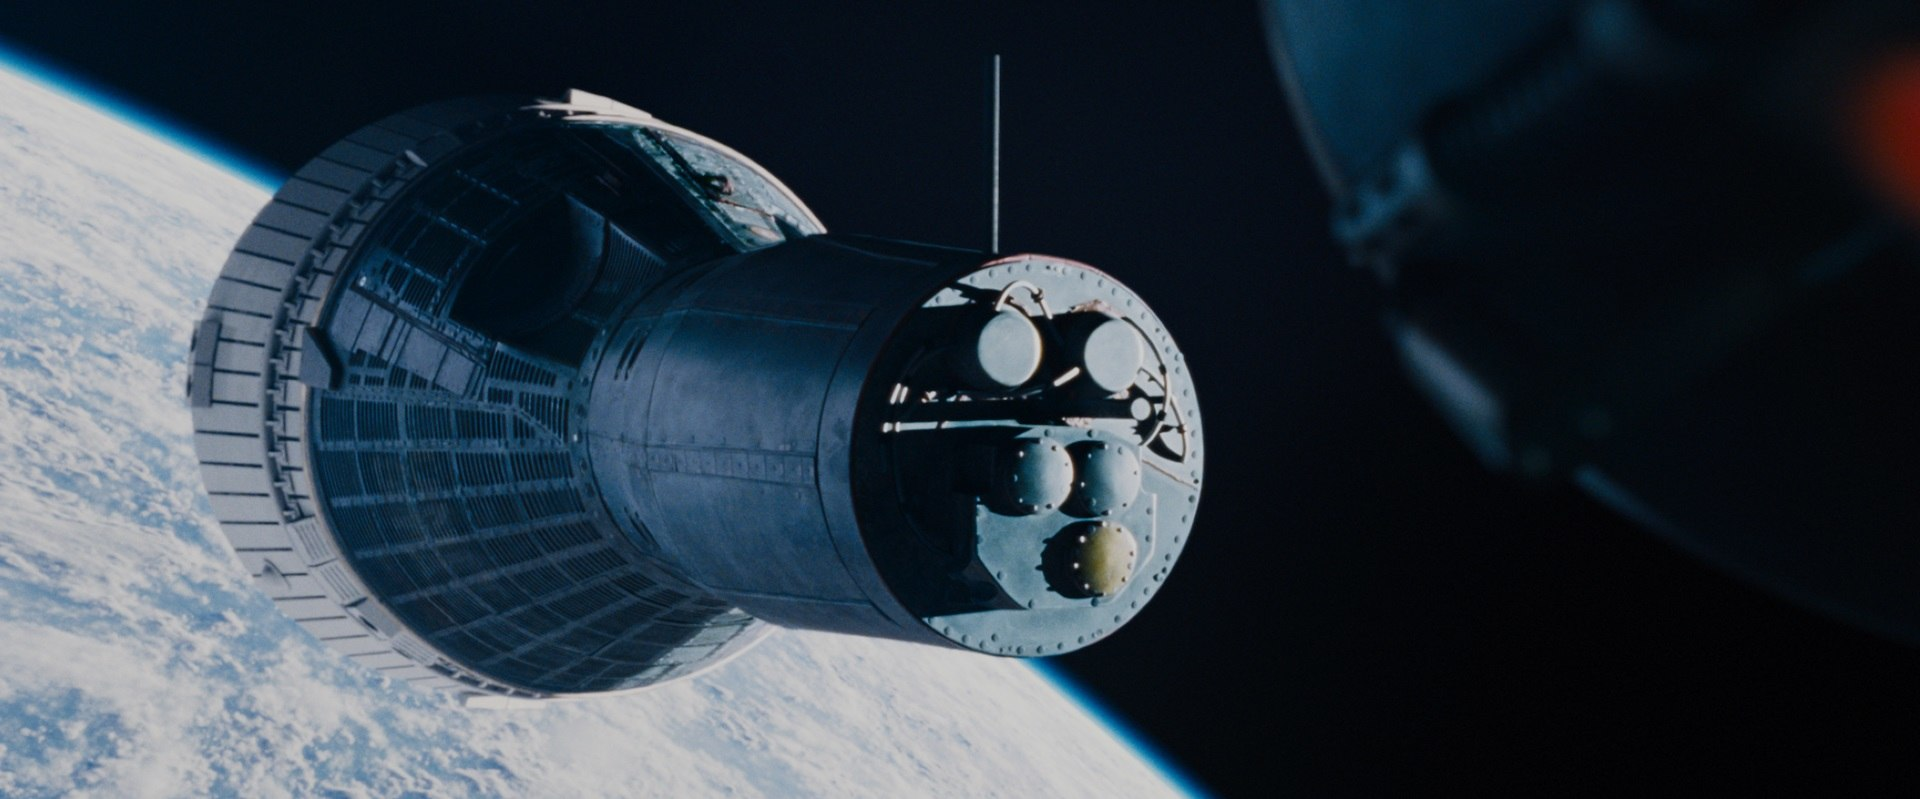 One Small Step: Recreating the Historic Lunar Landing for